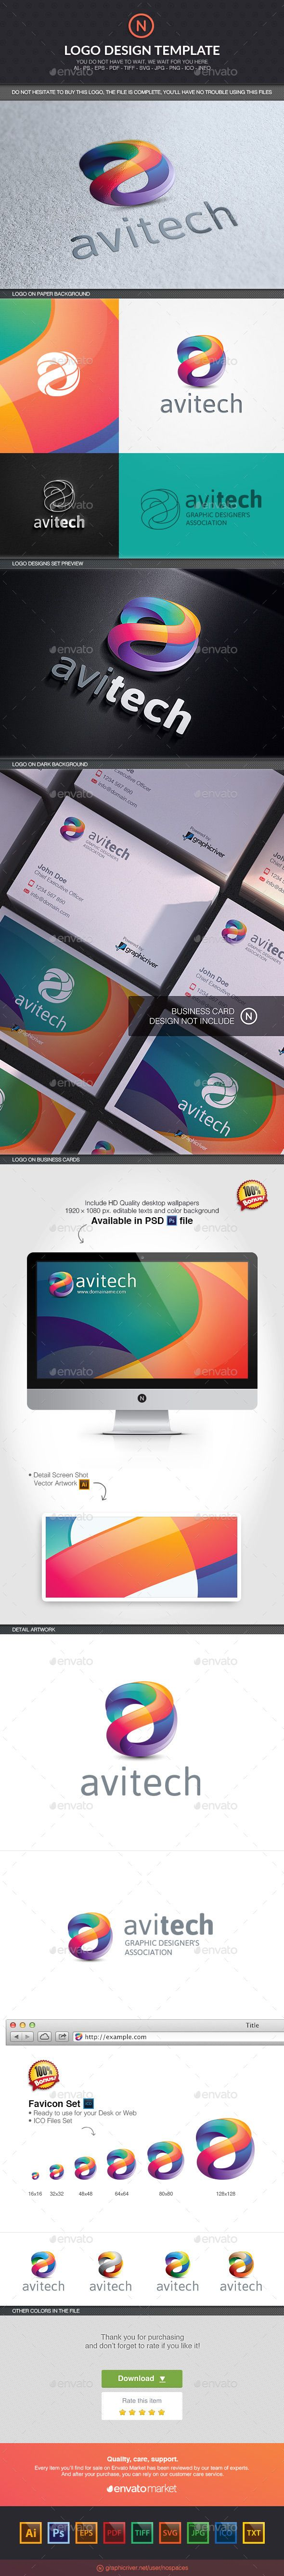 best ideas about logo design software logo avi tech software